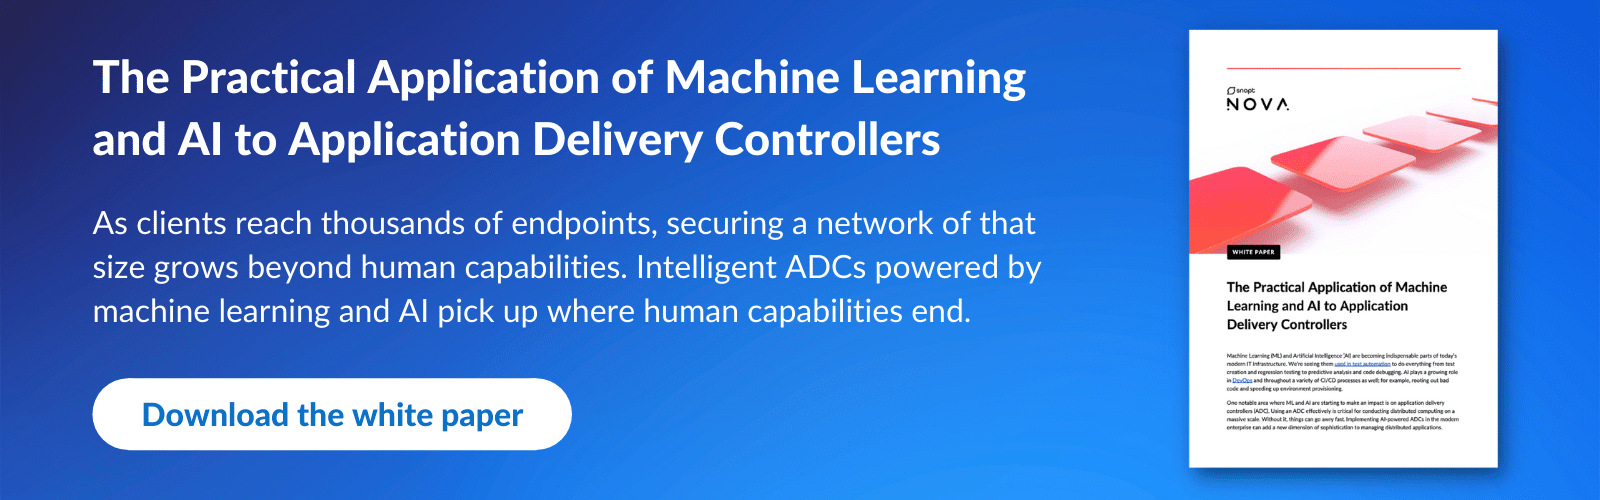 Download white paper: The Practical Application of Machine Learning and AI to Application Delivery Controllers